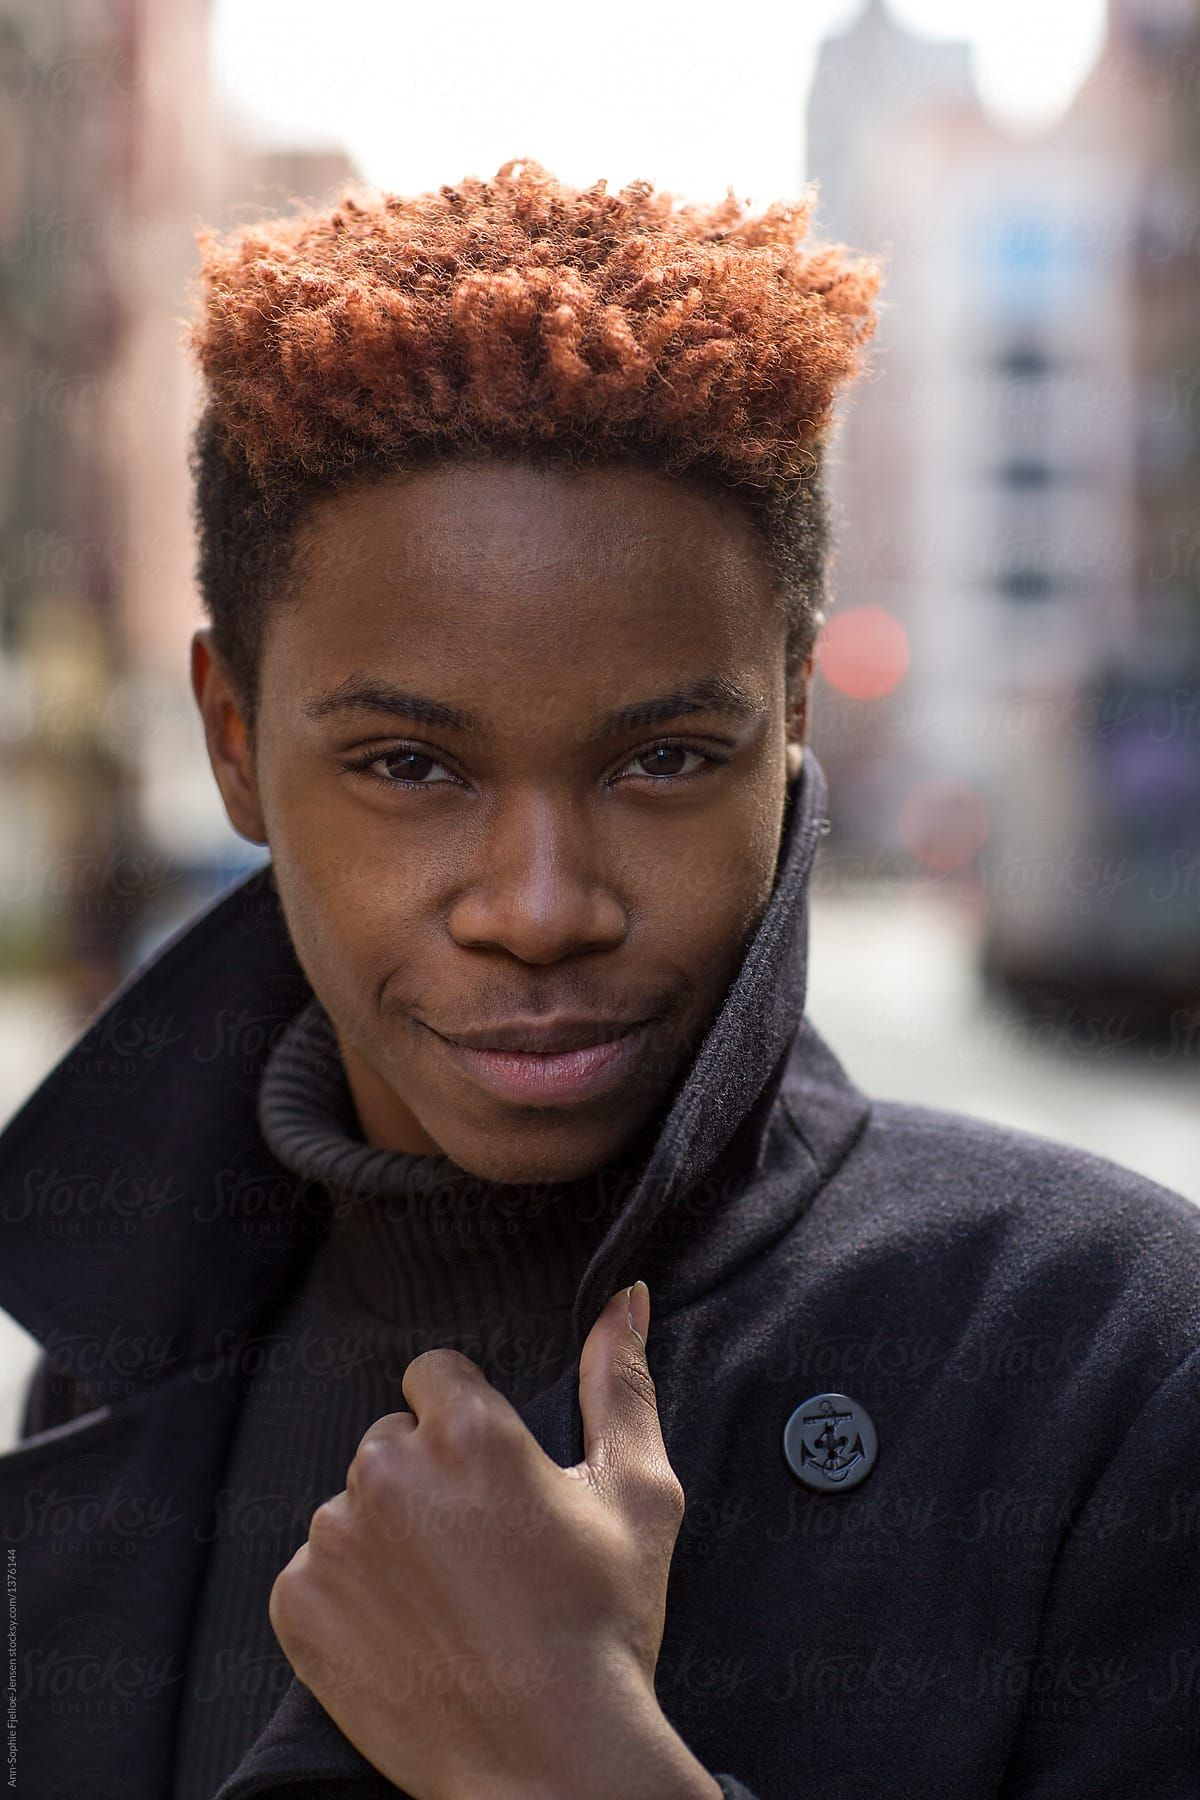 Black Man With Ginger Hair - 12 cute hairstyle ideas for